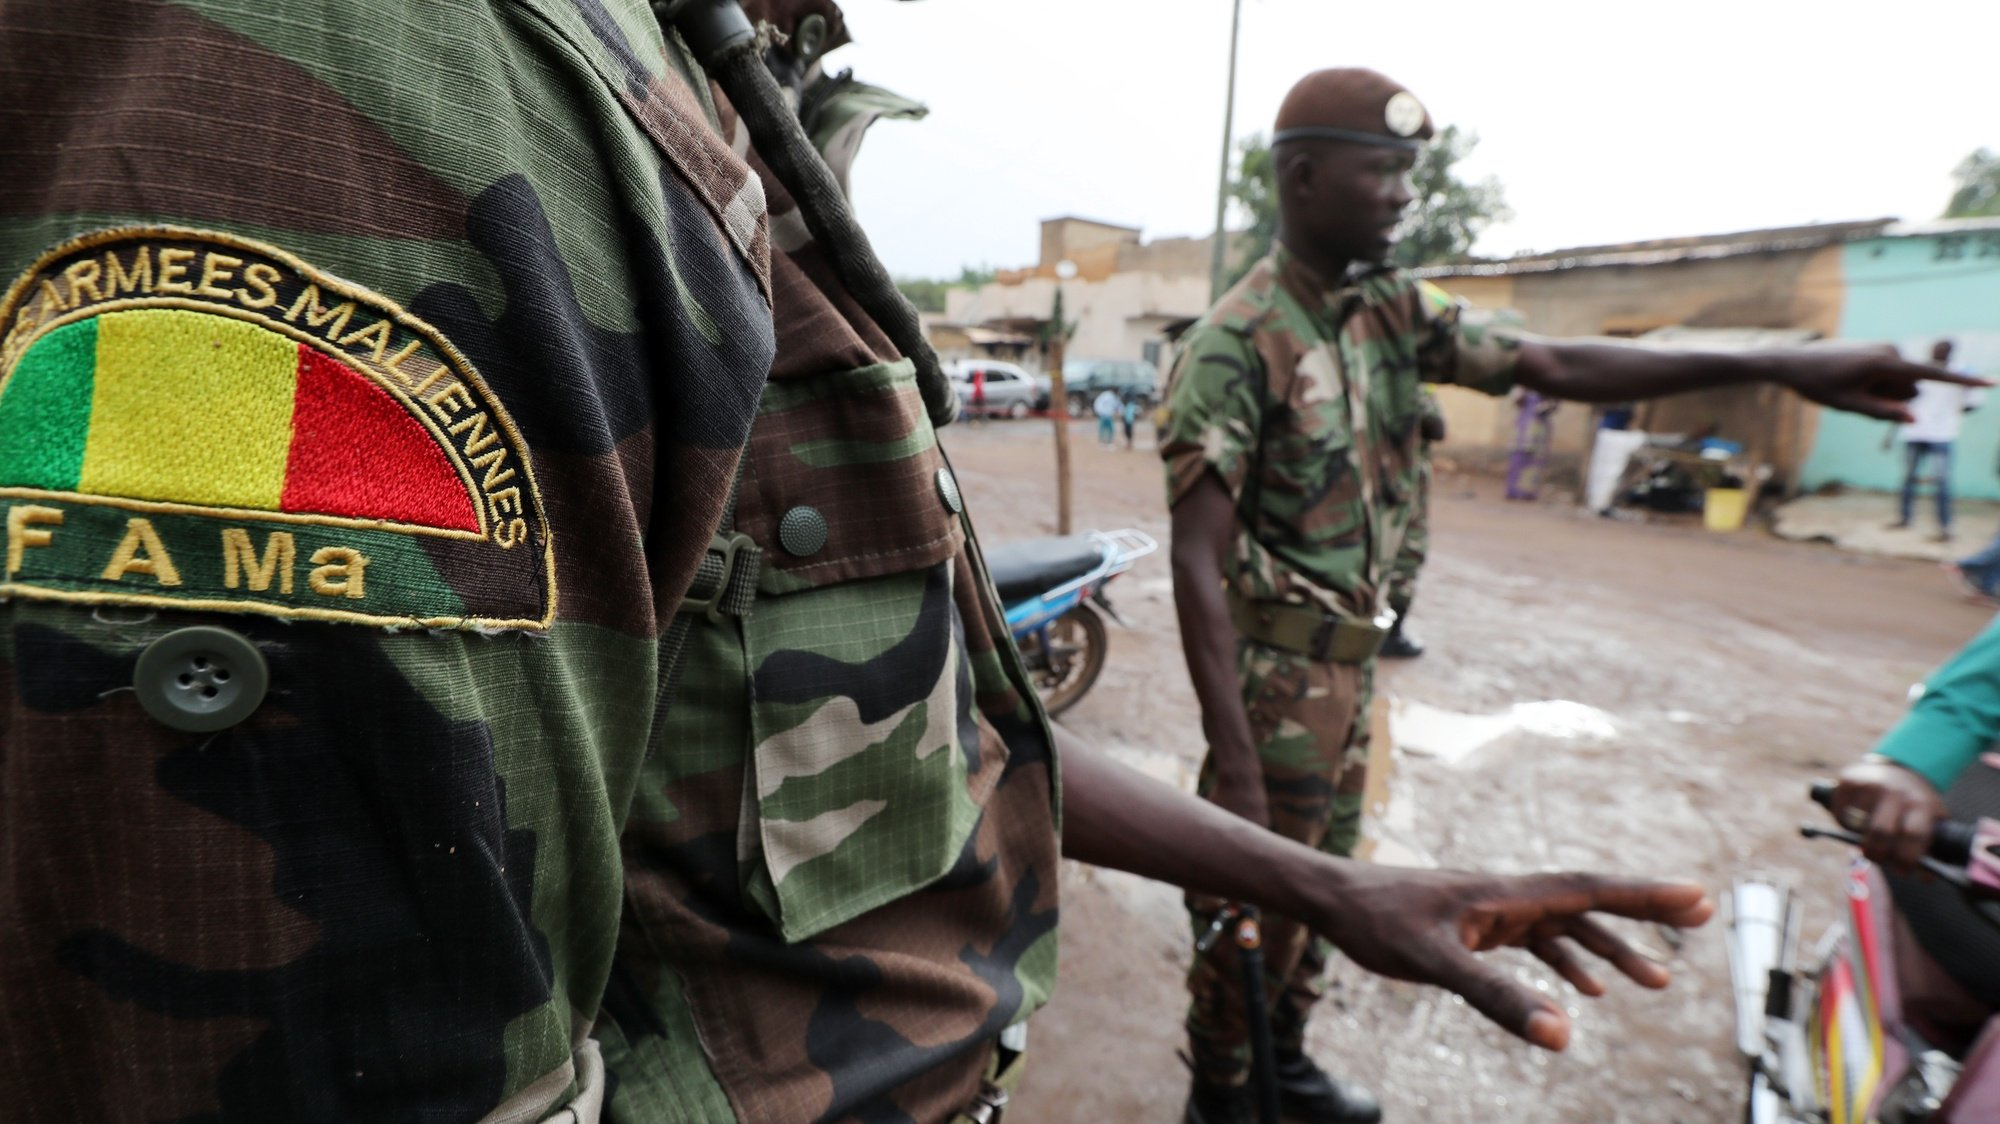 epa08610817 (FILE) - Malian soldiers stand guard at a polling station in Bamako, Mali, 29 July 2018 (reissued 18 August 2020). Reports on 18 August 2020 state that gunfire was heard at Malian army base Kati outside Bamako. Foreign embassies such as Norway's and France's have called on their citizens in Mali to stay home amid what could possibly be a coup.  EPA/MOHAMED MESSARA *** Local Caption *** 54520019